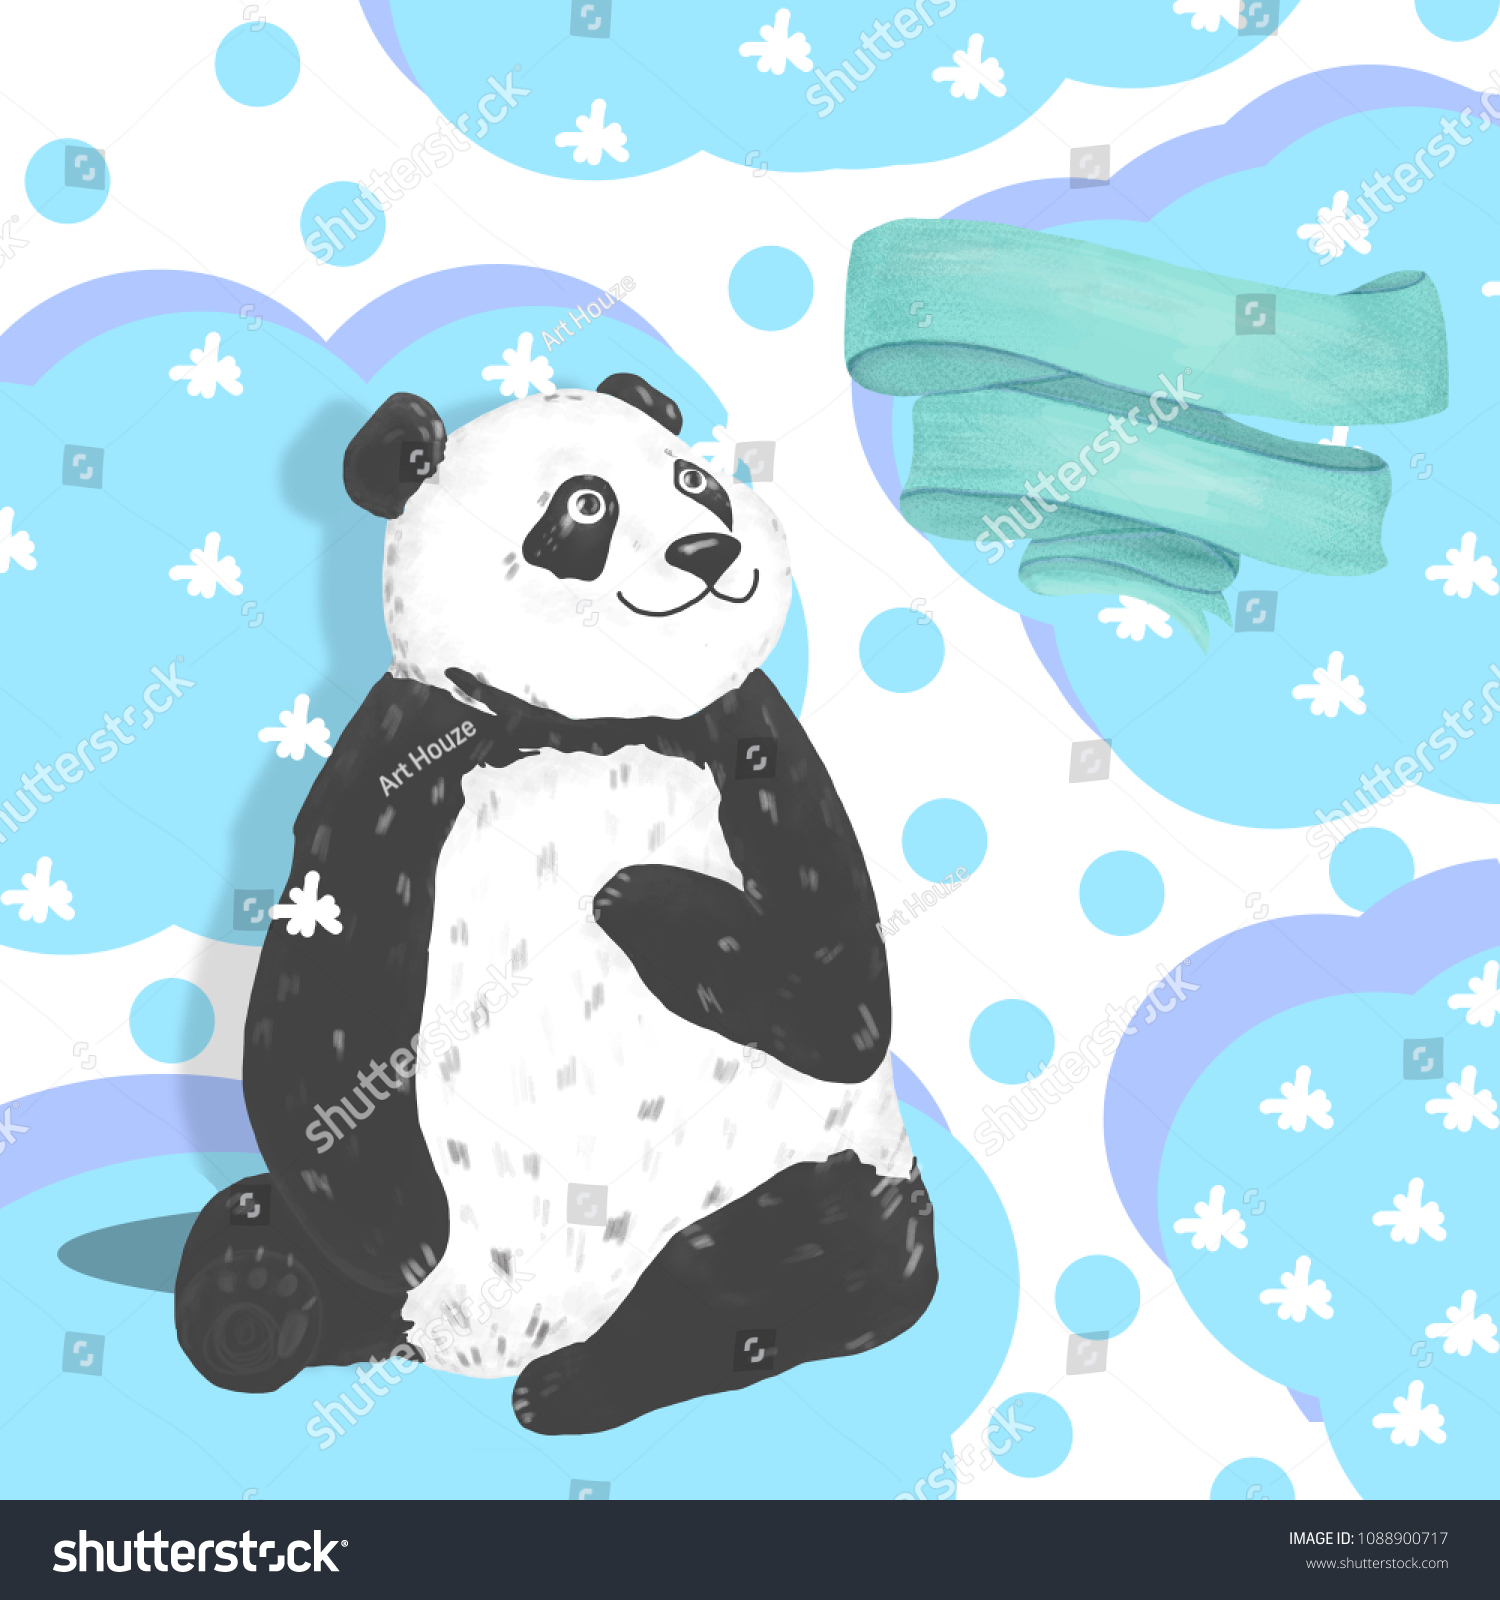 Clipart: happy birthday grandson   Happy Birthday card design with cute  panda bear and boho flowers and floral bouquets illustration. Watercolor clip  art for greeting, invite celebration card. Funny asian bear. Zoo